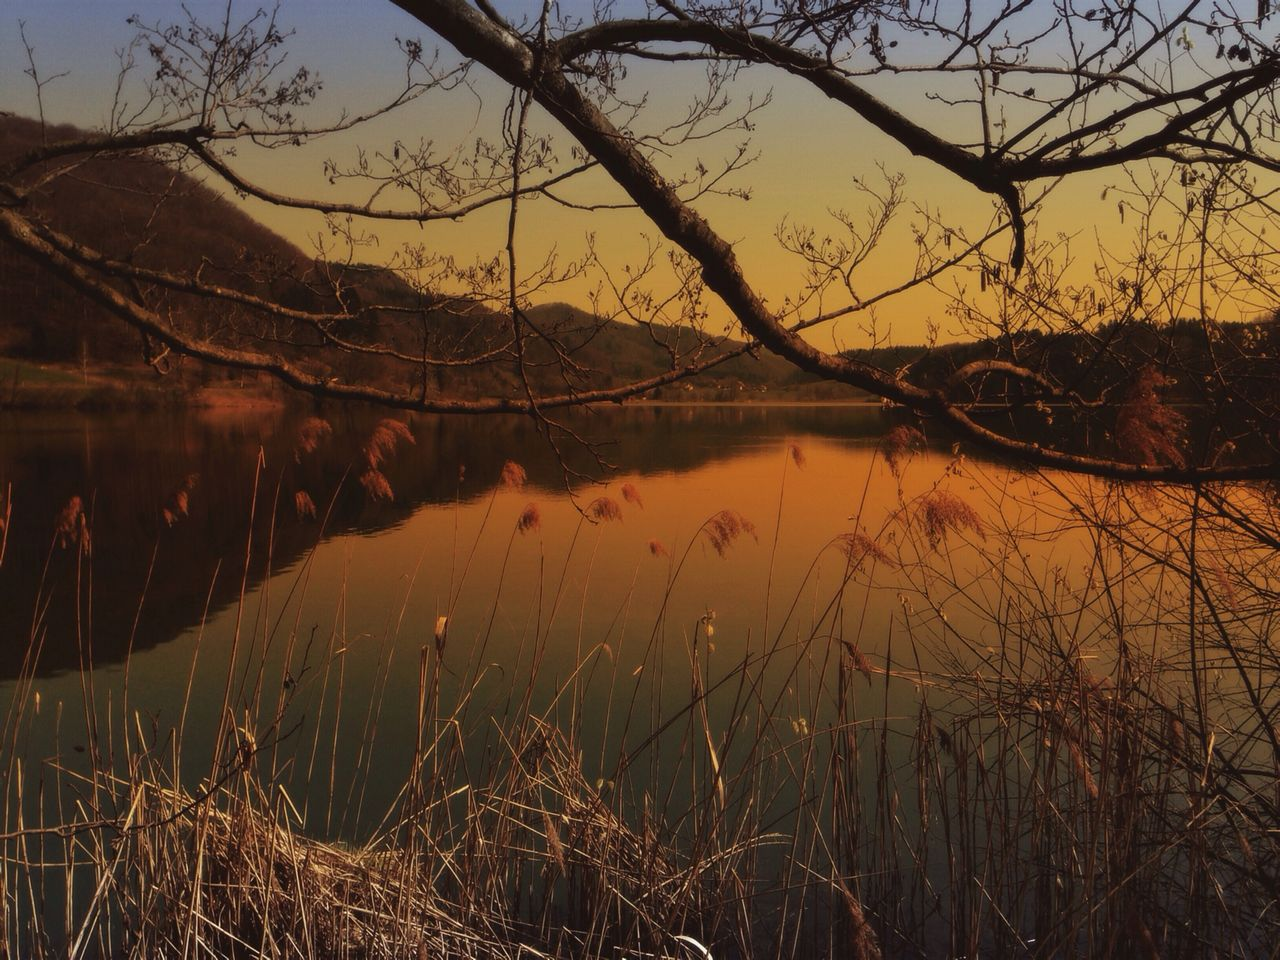 Scenic view of lake and mountains at sunset seen through branches